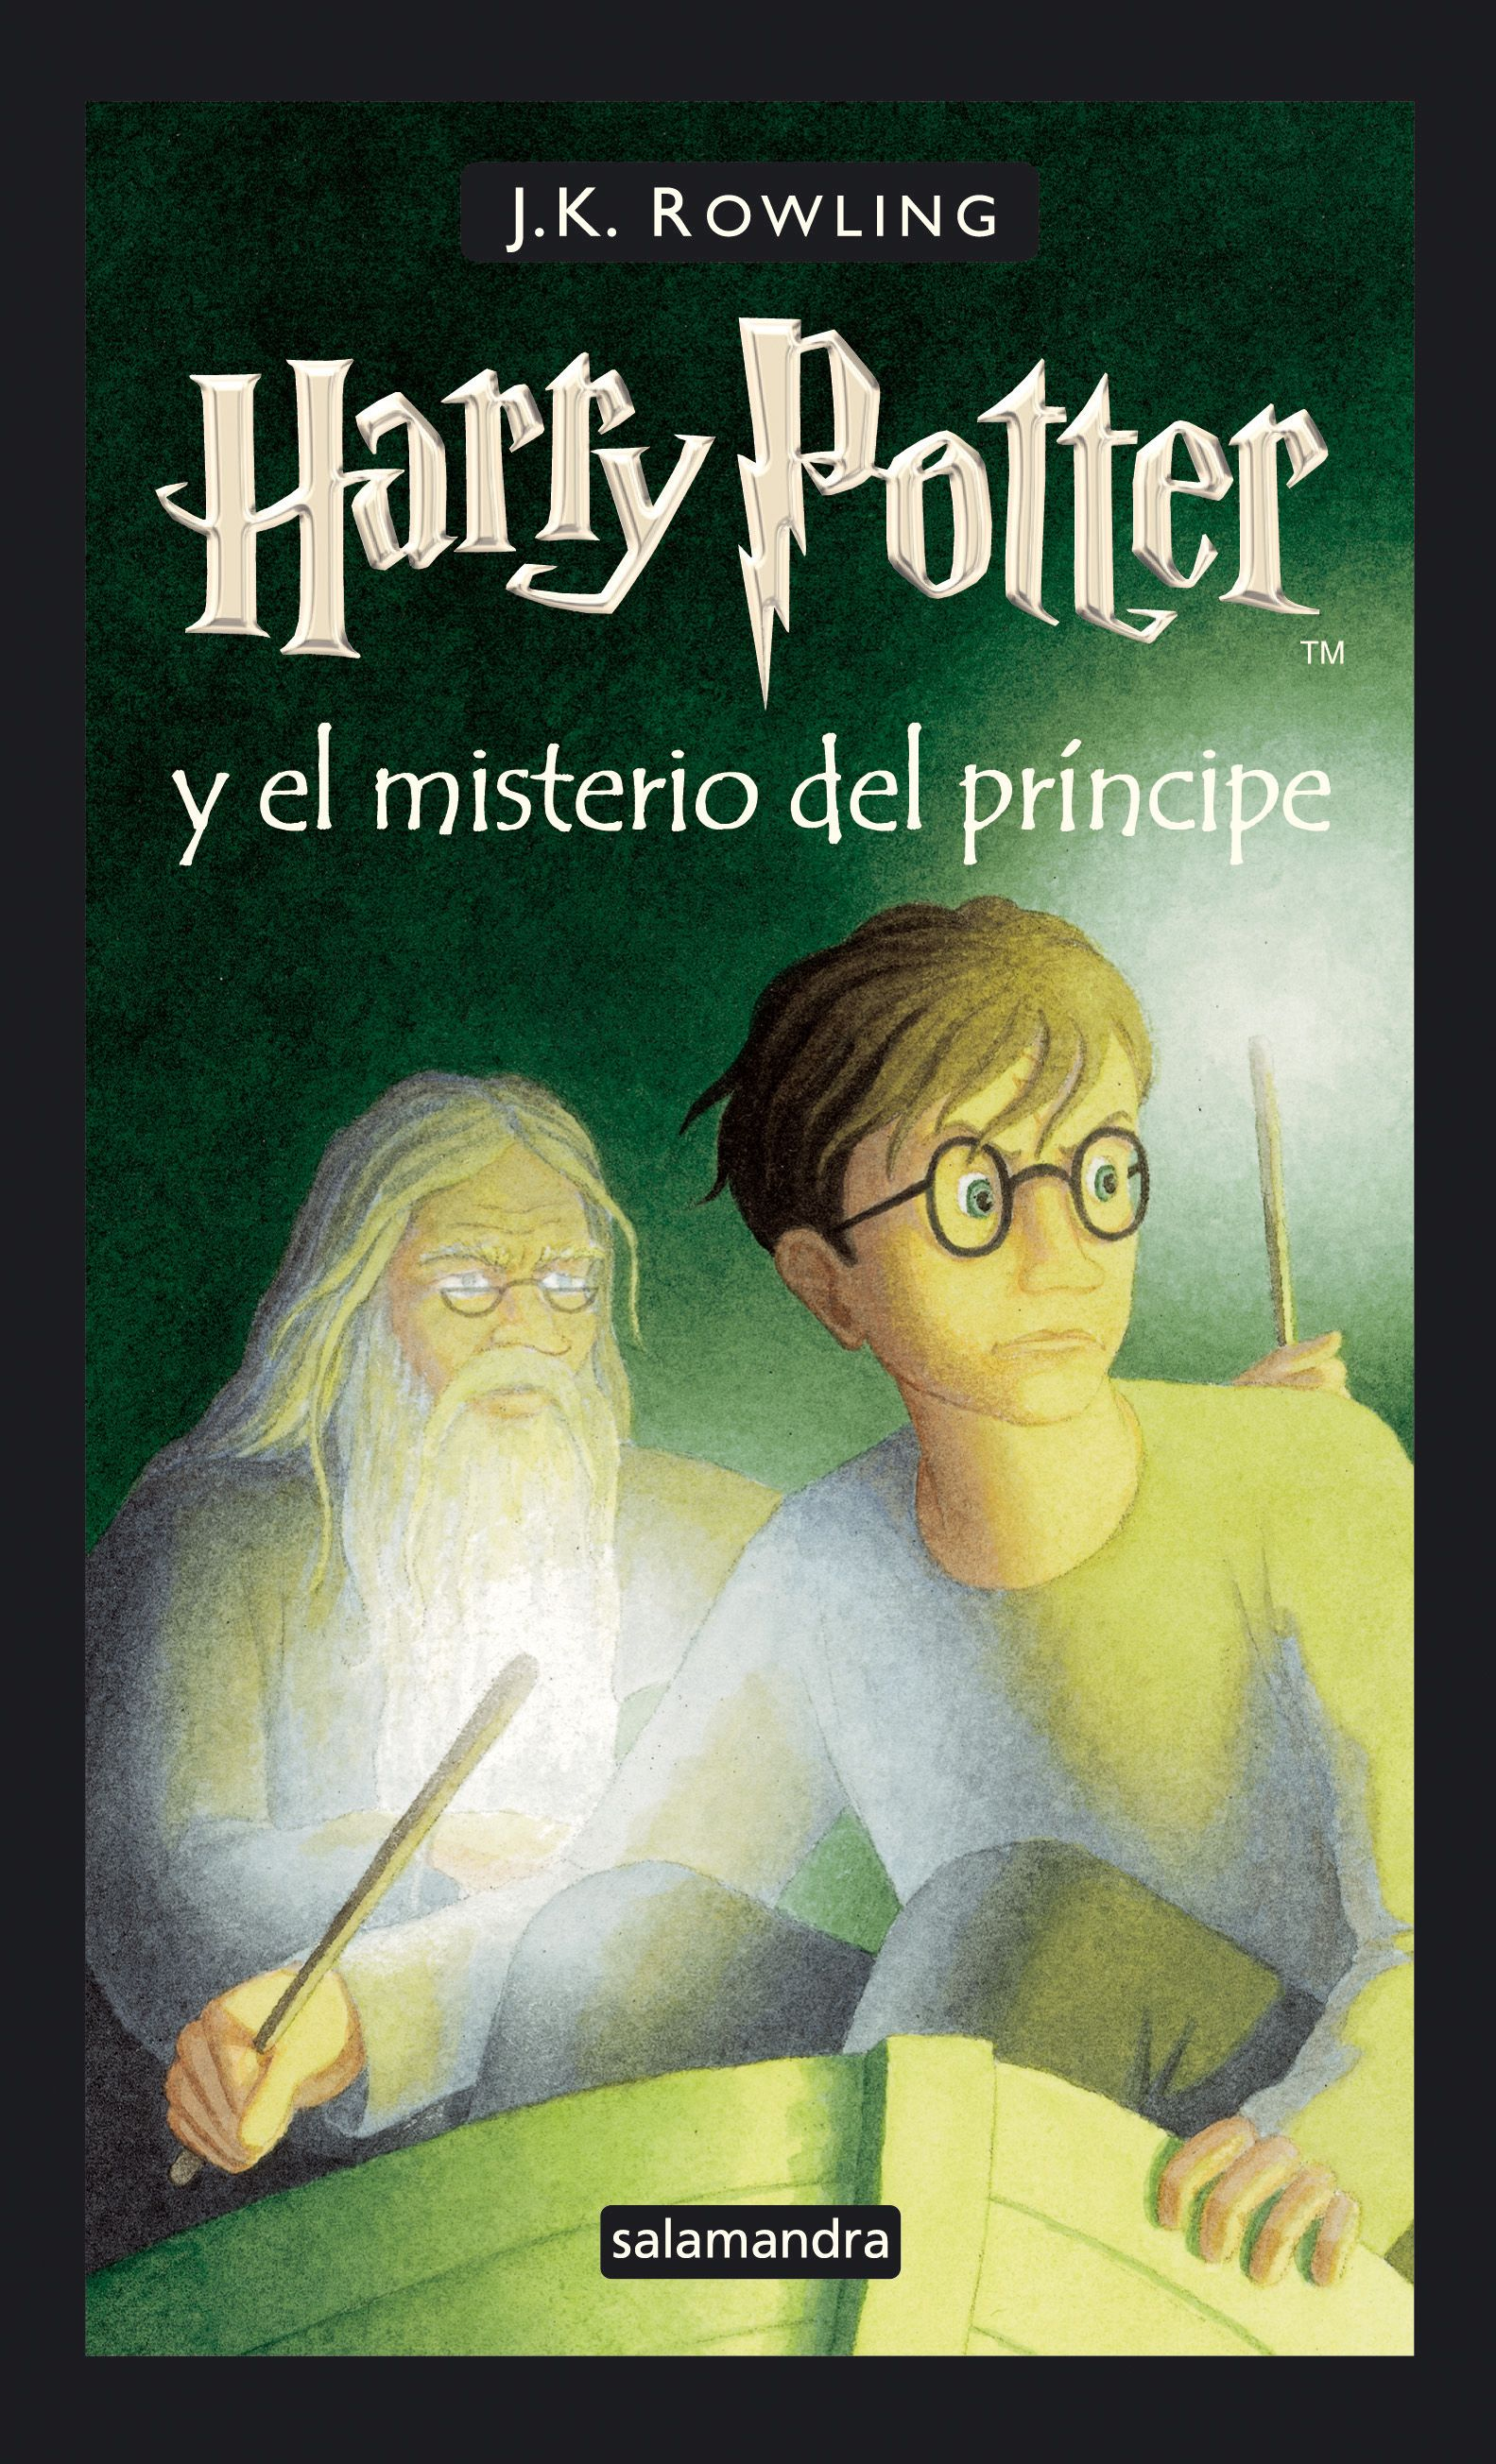 Libros Star Wars Pdf Descargar Los 11 Libros De Harry Potter Completos En Pdf Por